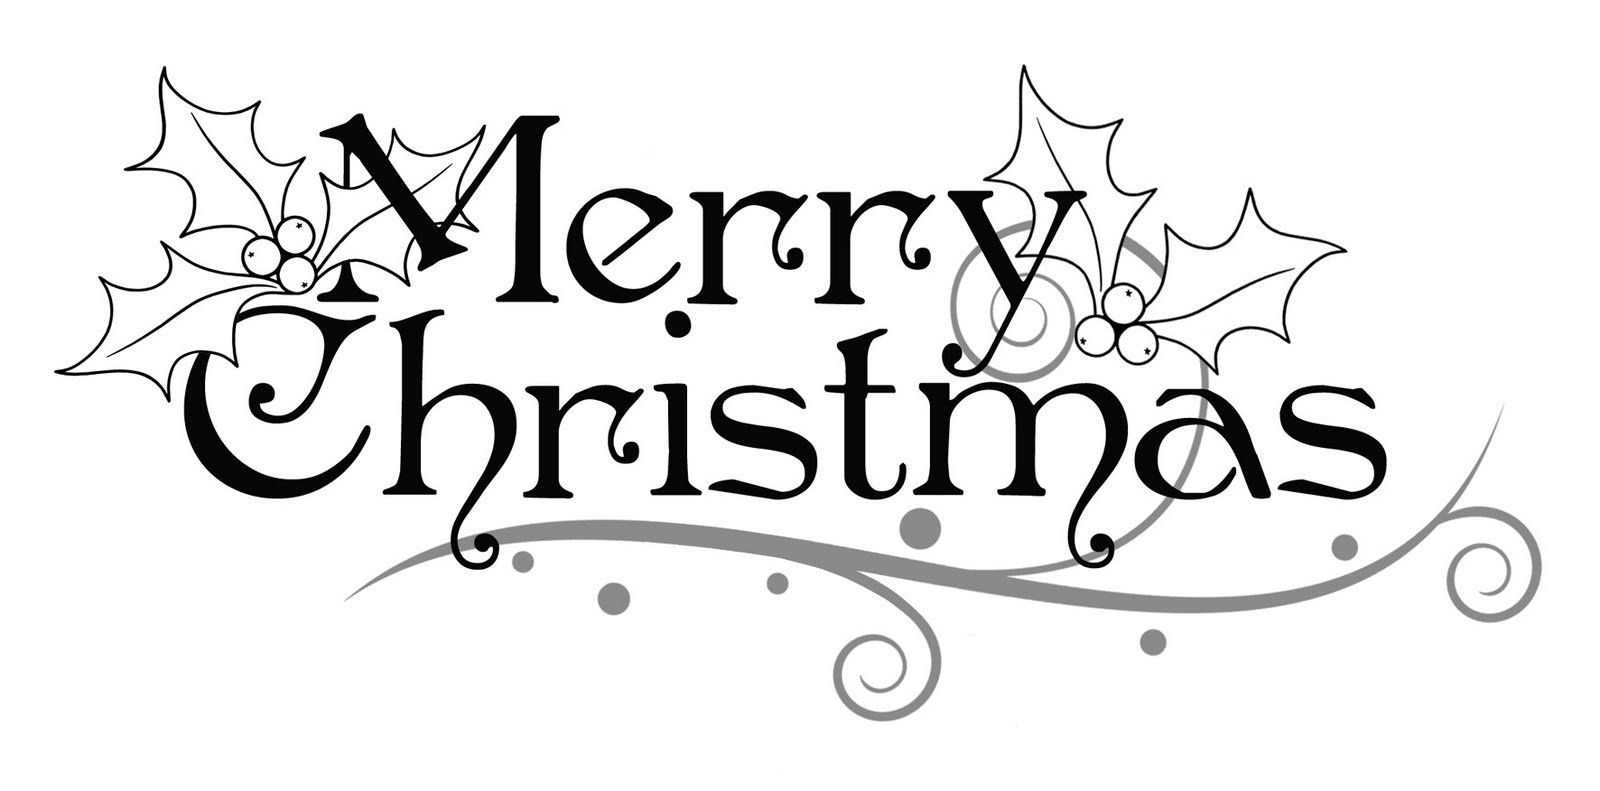 Clipart black and white christmas card image free Xmas Clipart Black And White | Free download best Xmas Clipart Black ... image free